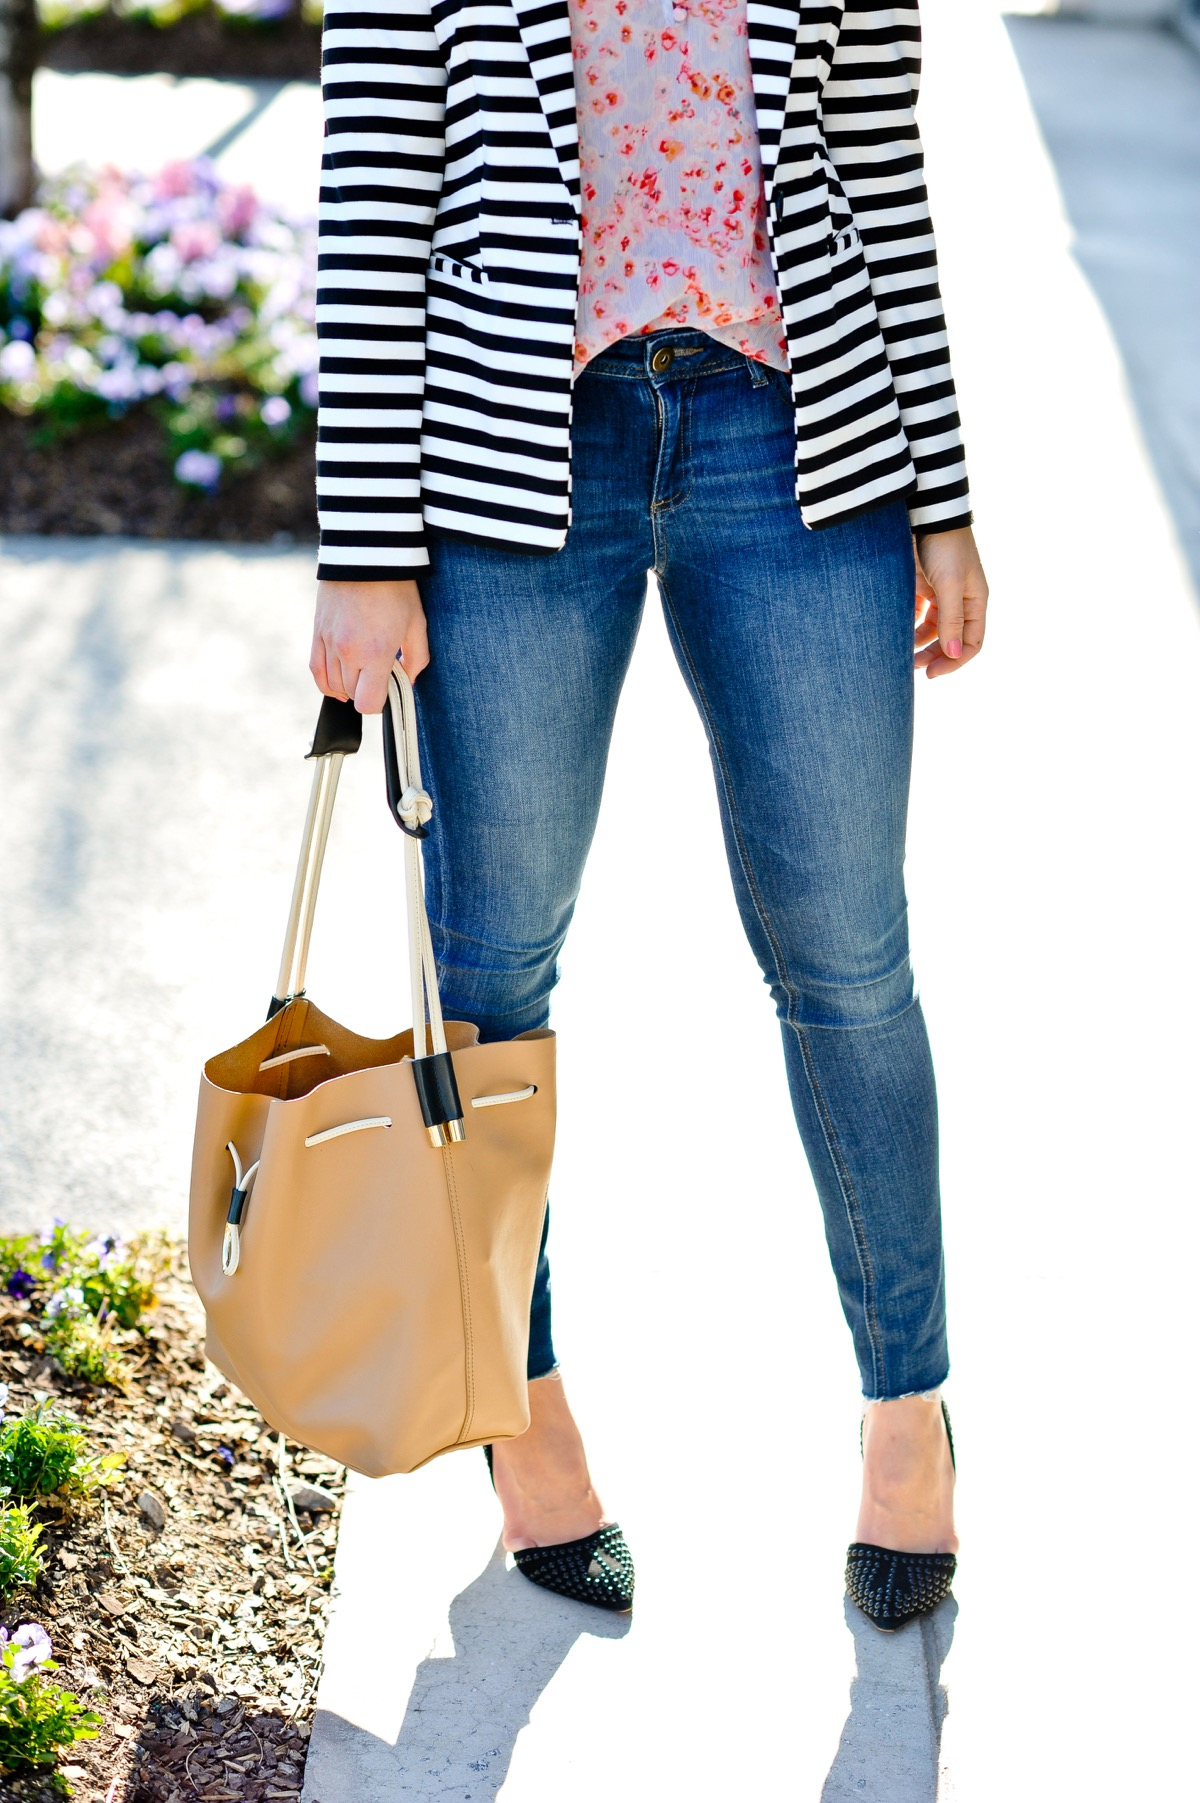 Ways to wear floral and stripes together, Florals and stripes spring outfit ideas - @mystylevita